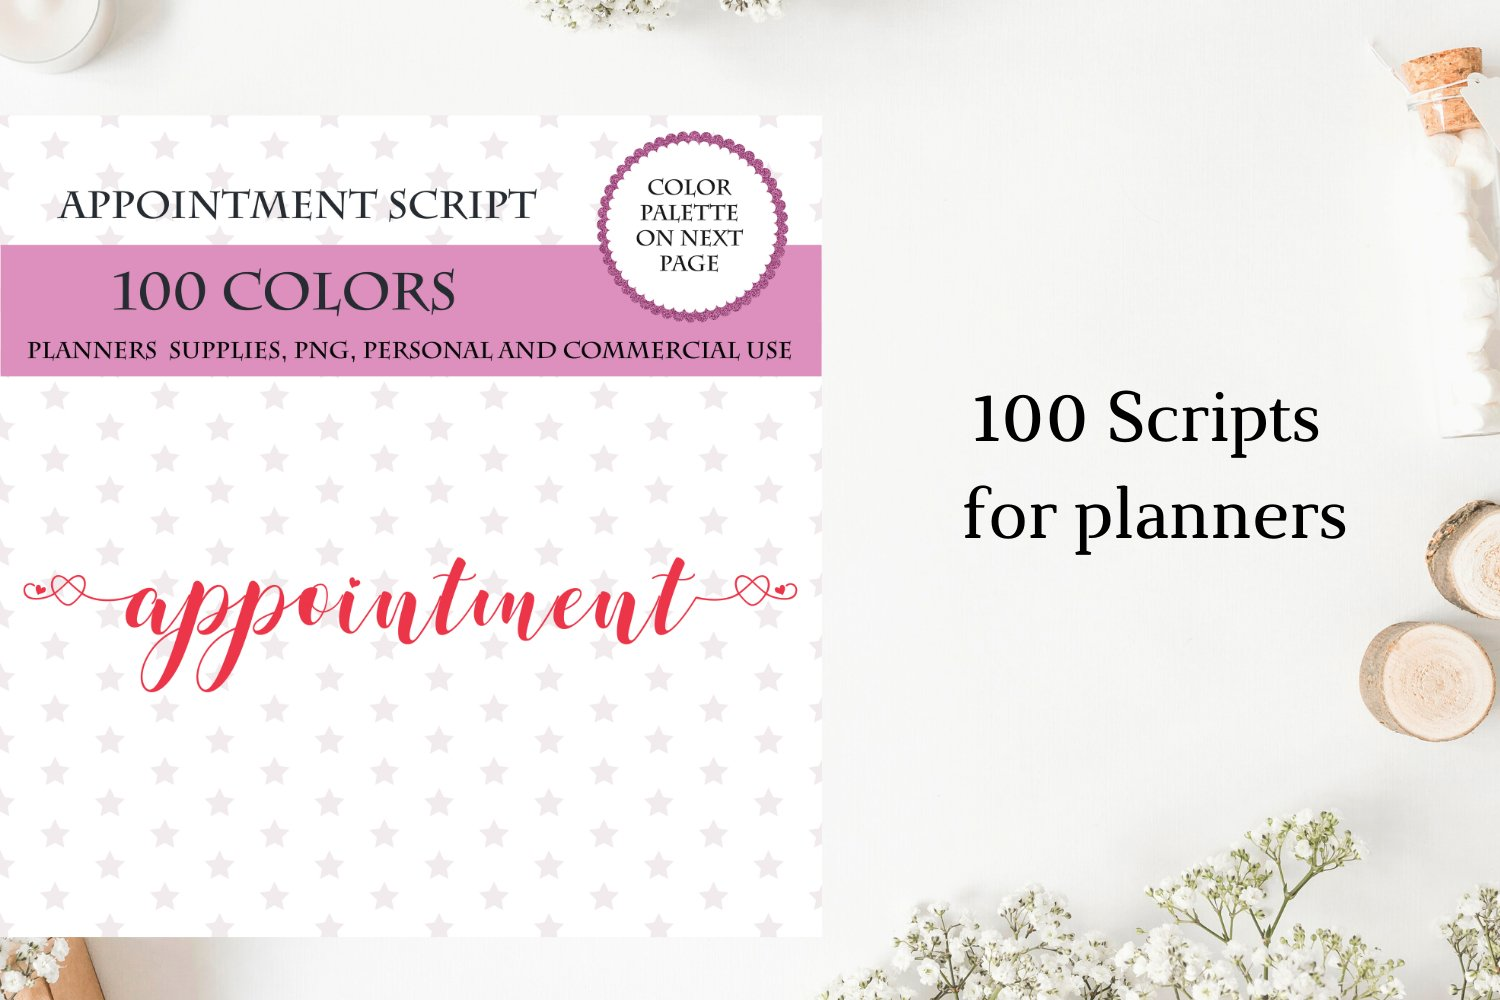 100 Appointment font clipart, Appointment sticker clipart example image 2